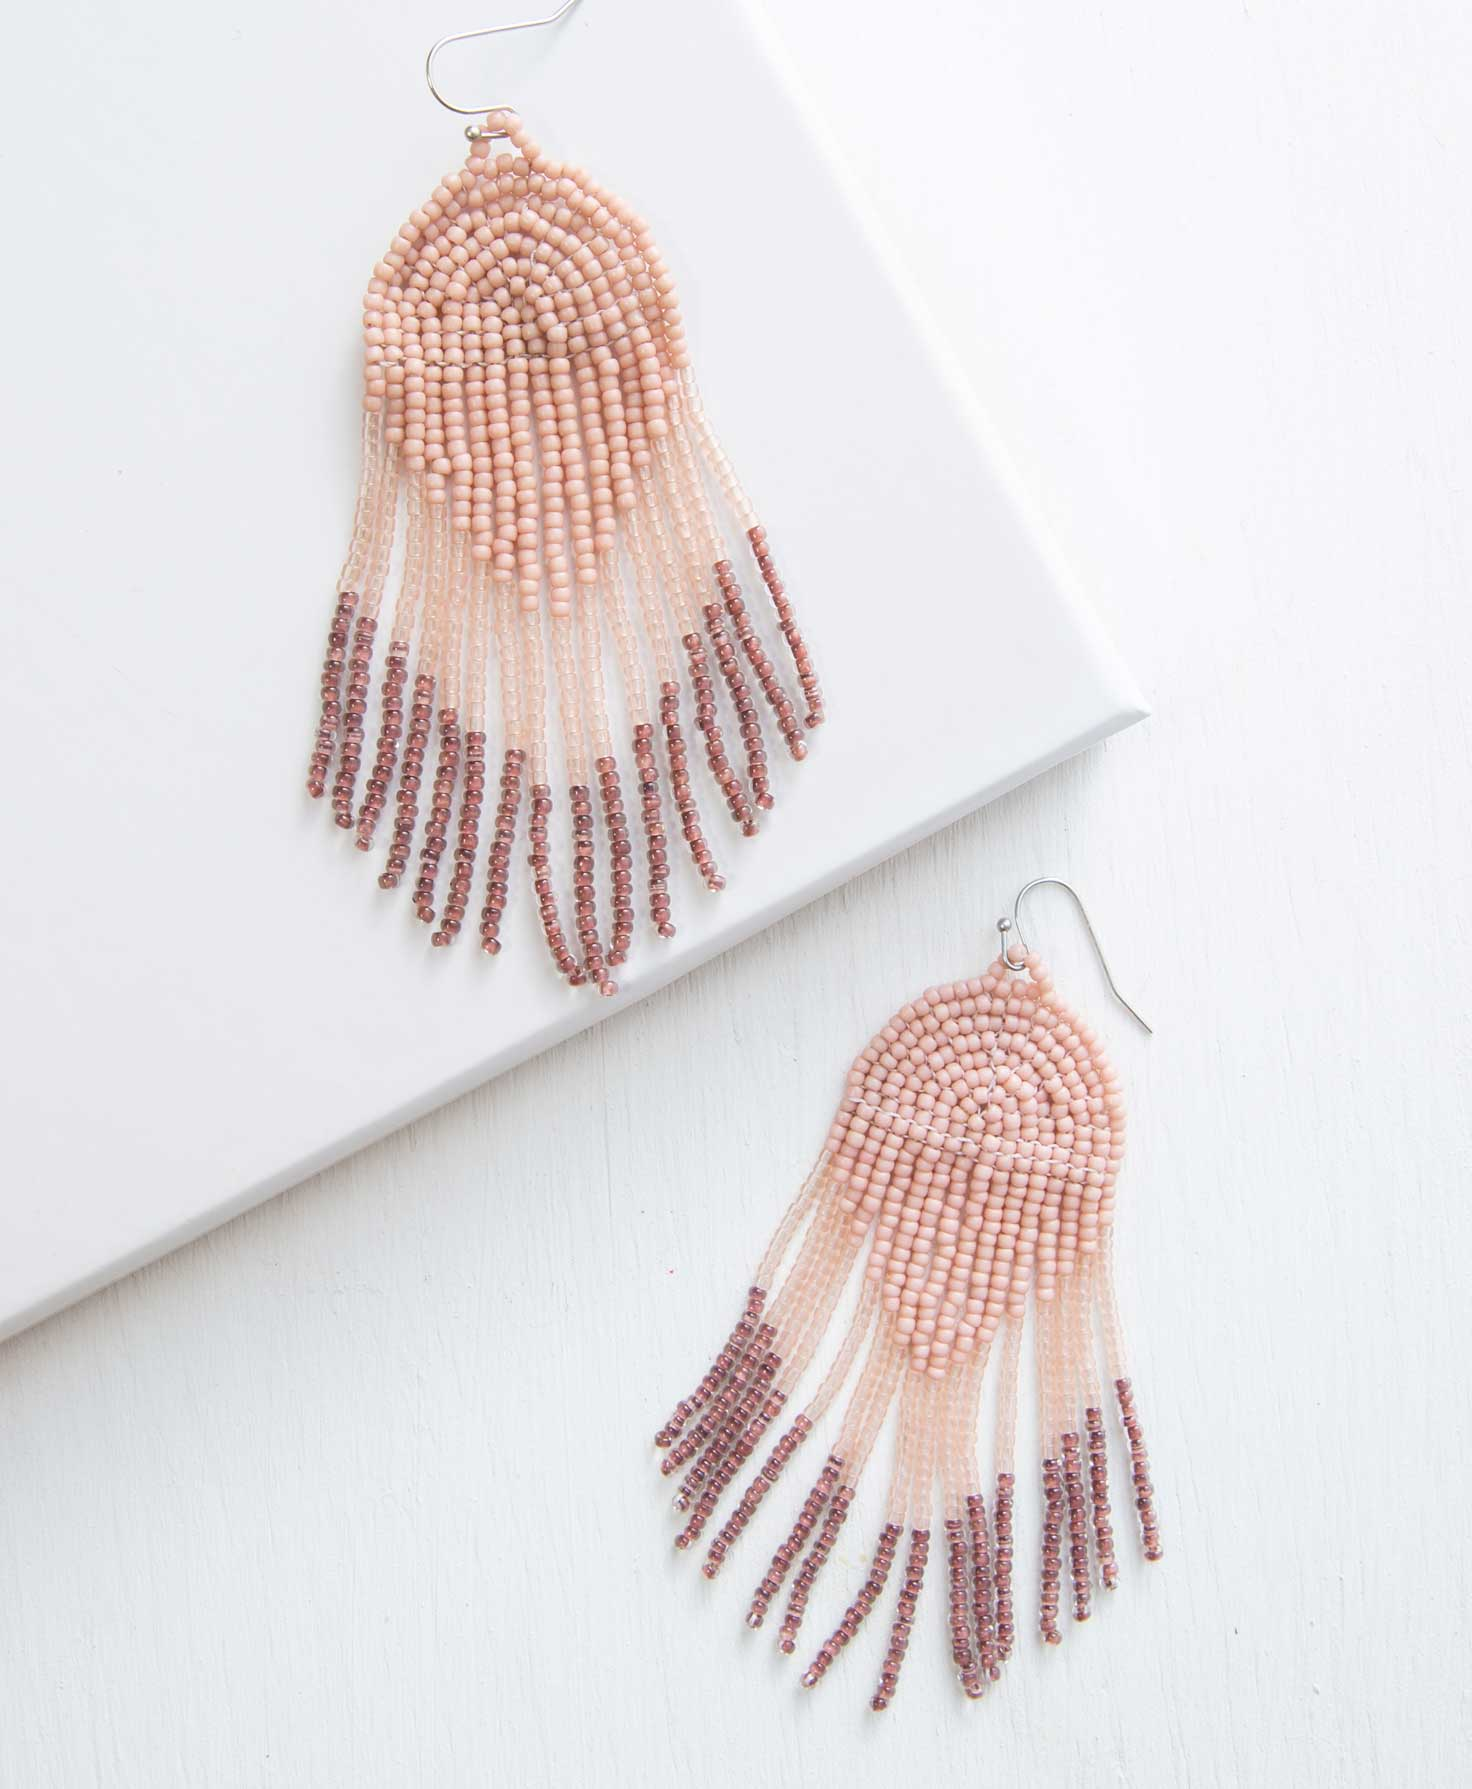 The Crux Earrings lay on a white background. They are boho-style, beaded chandelier earrings. They feature silver ear hooks with glass beads in three different shades hanging down. The top of the design is composed of blush colored beads that form an arch below the ear hook, then taper down into a V shape. Connected to this are strings of translucent blush beads that hang straight down in a fringe. The fringe ends in a line of translucent plum colored beads.